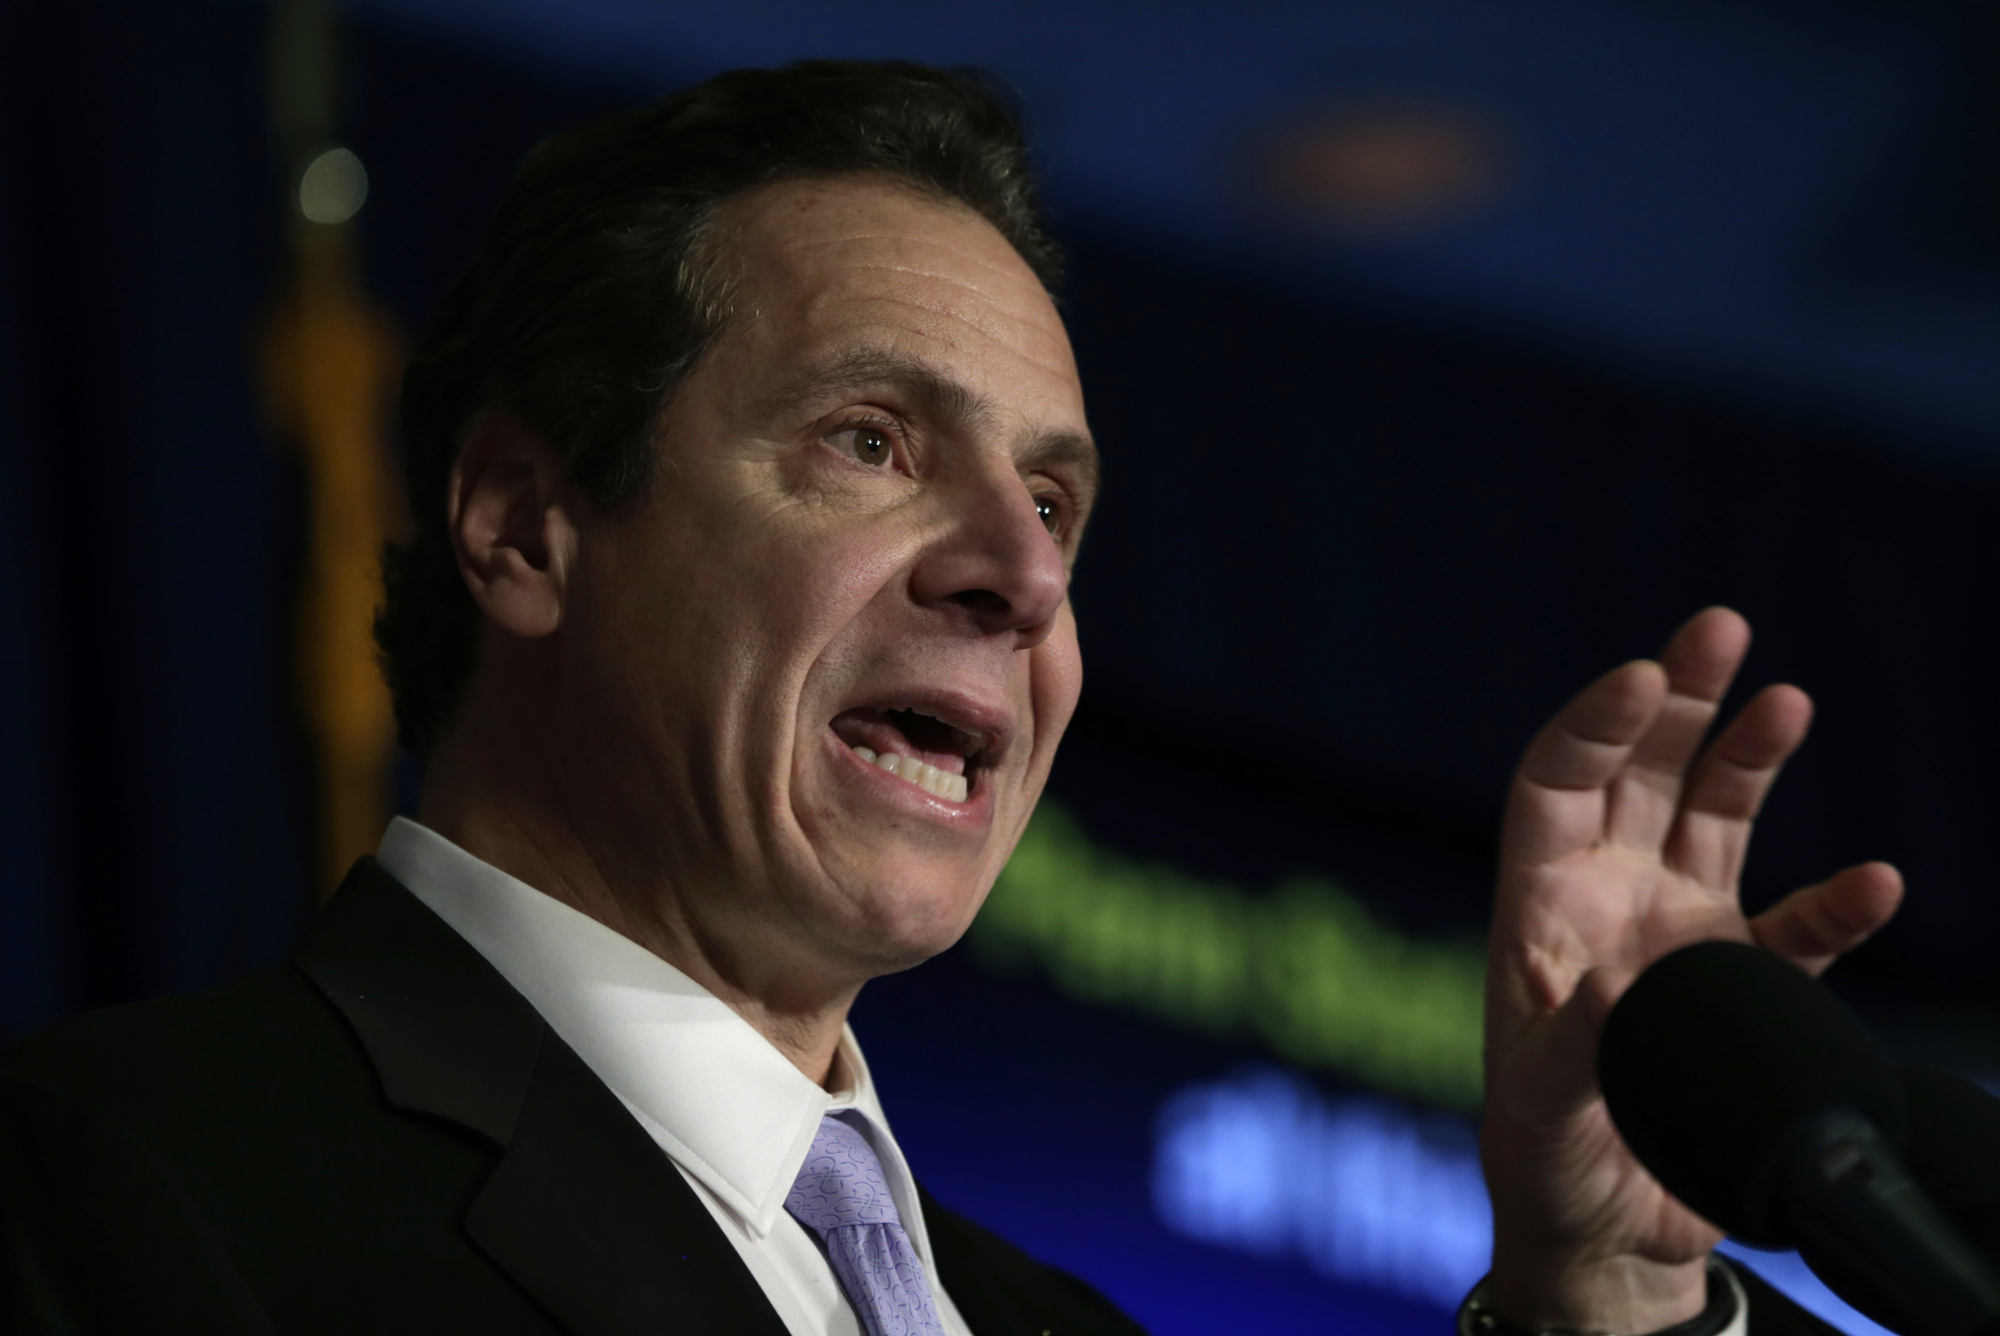 New York Governor Andrew Cuomo Makes An Announcement